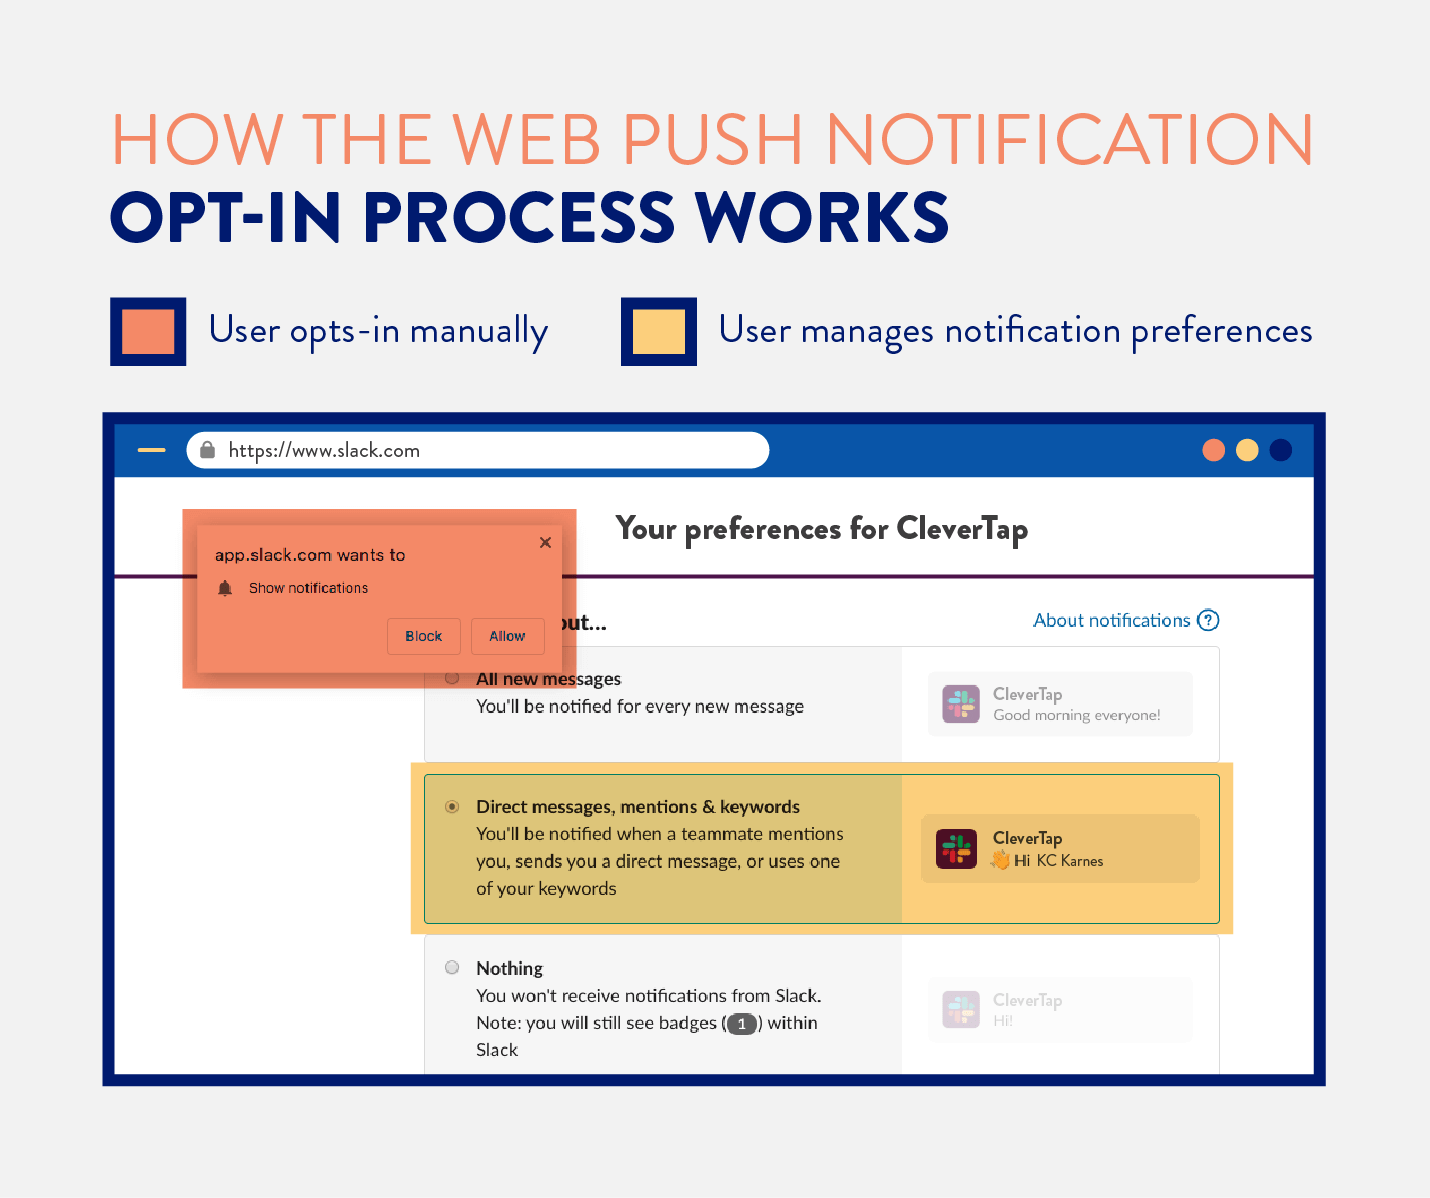 how the web push notification opt in process works using example from slack